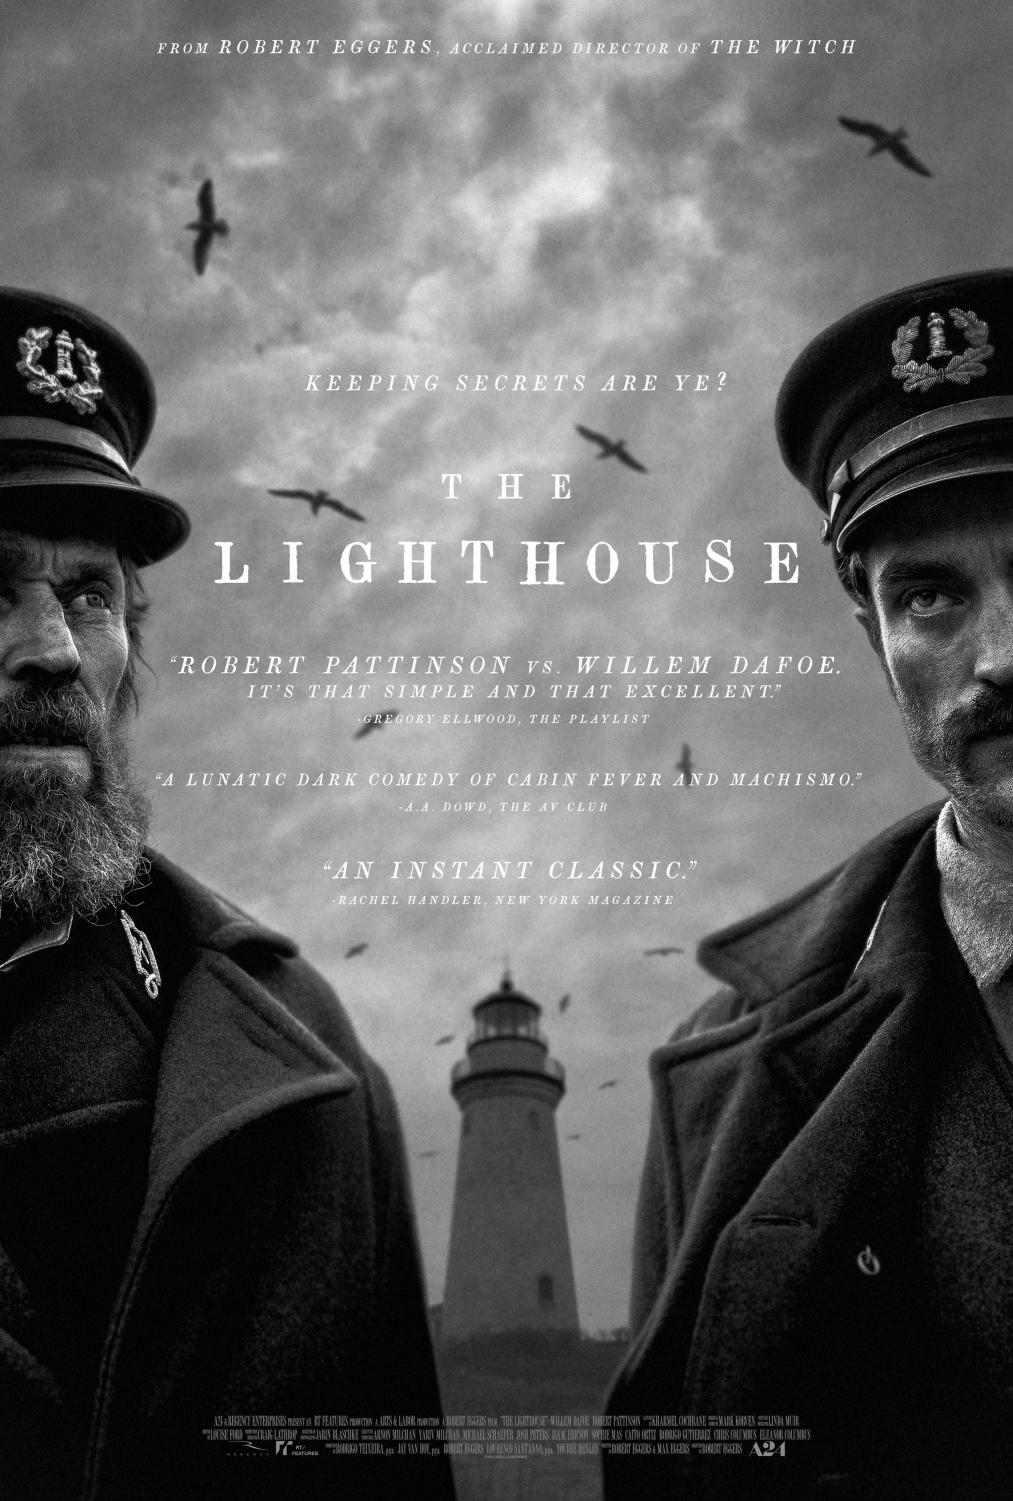 Second poster for 'The Lighthouse', directed by Roger Eggers, coming out October 18. Starring Robert Pattinson and Willem Dafoe, 'The Lighthouse' is the movie to look out for this fall.